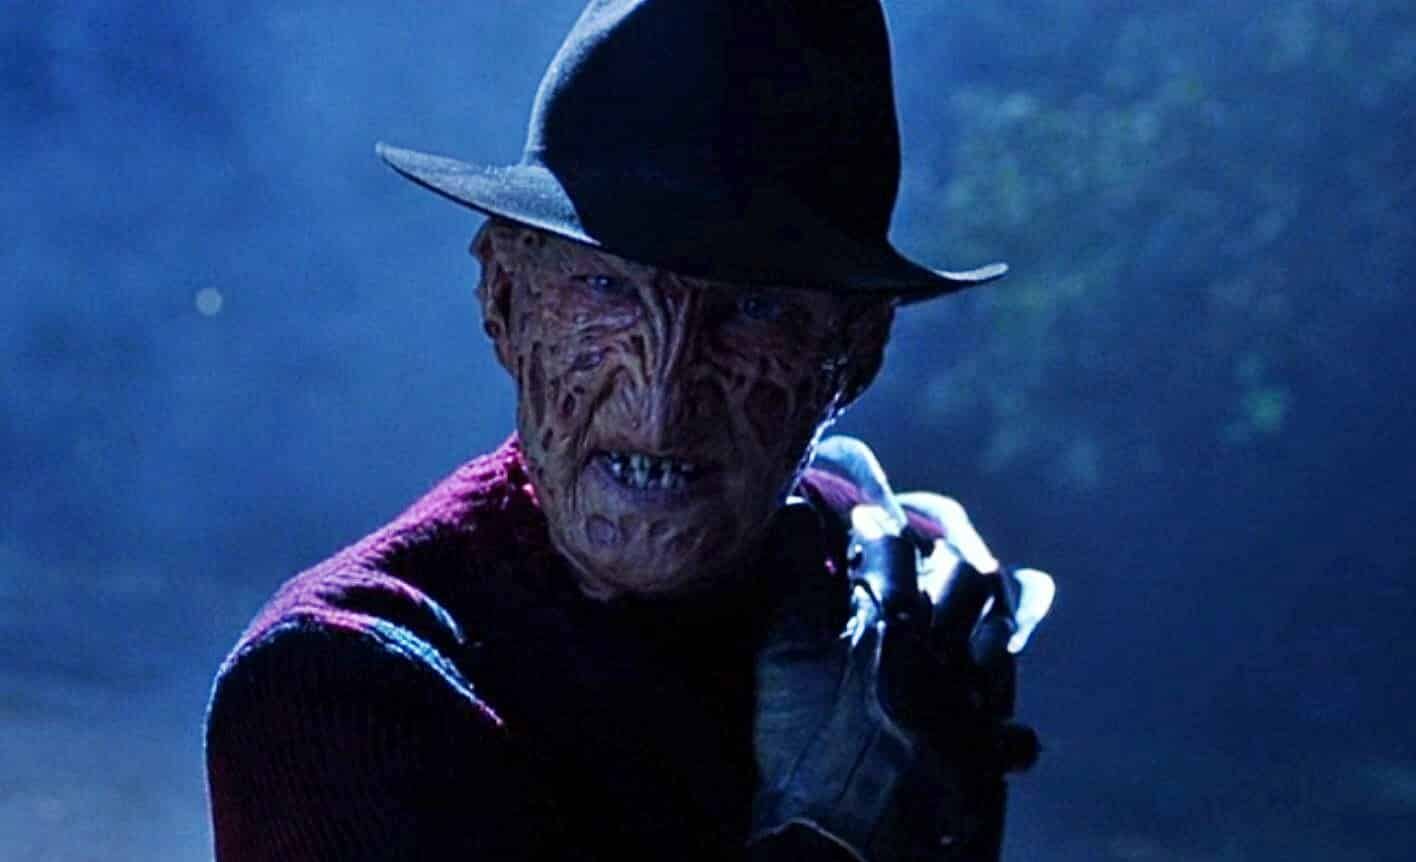 freddy krueger a nightmare on elm street 20 Characters That Scared The Life Out Of Us As Children